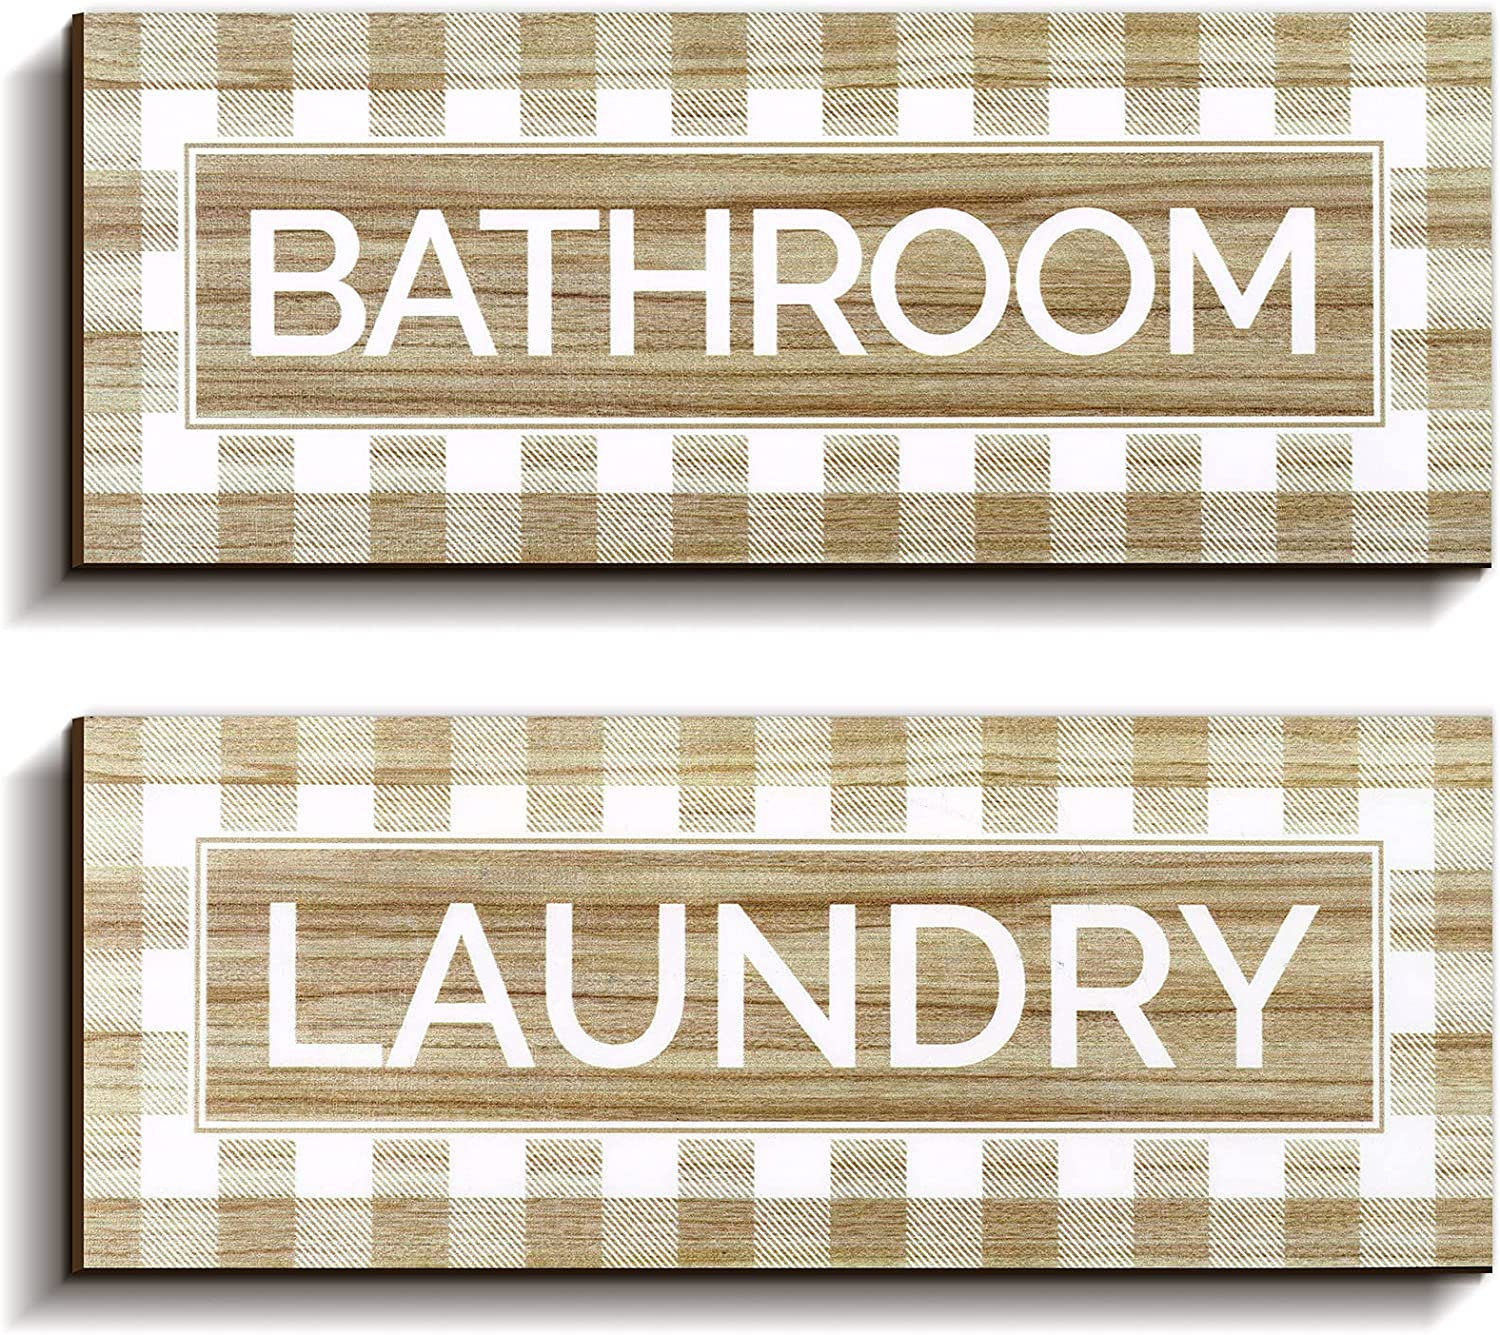 Jetec 2 Pieces Laundry and Bathroom Buffalo Plaid Wooden Sign Wall Decor Vintage Farmhouse Style Kitchen Decorative Rustic Wall Decor for Home Kitchen Restaurant, 14 x 5.5 x 0.2 Inch, Brown